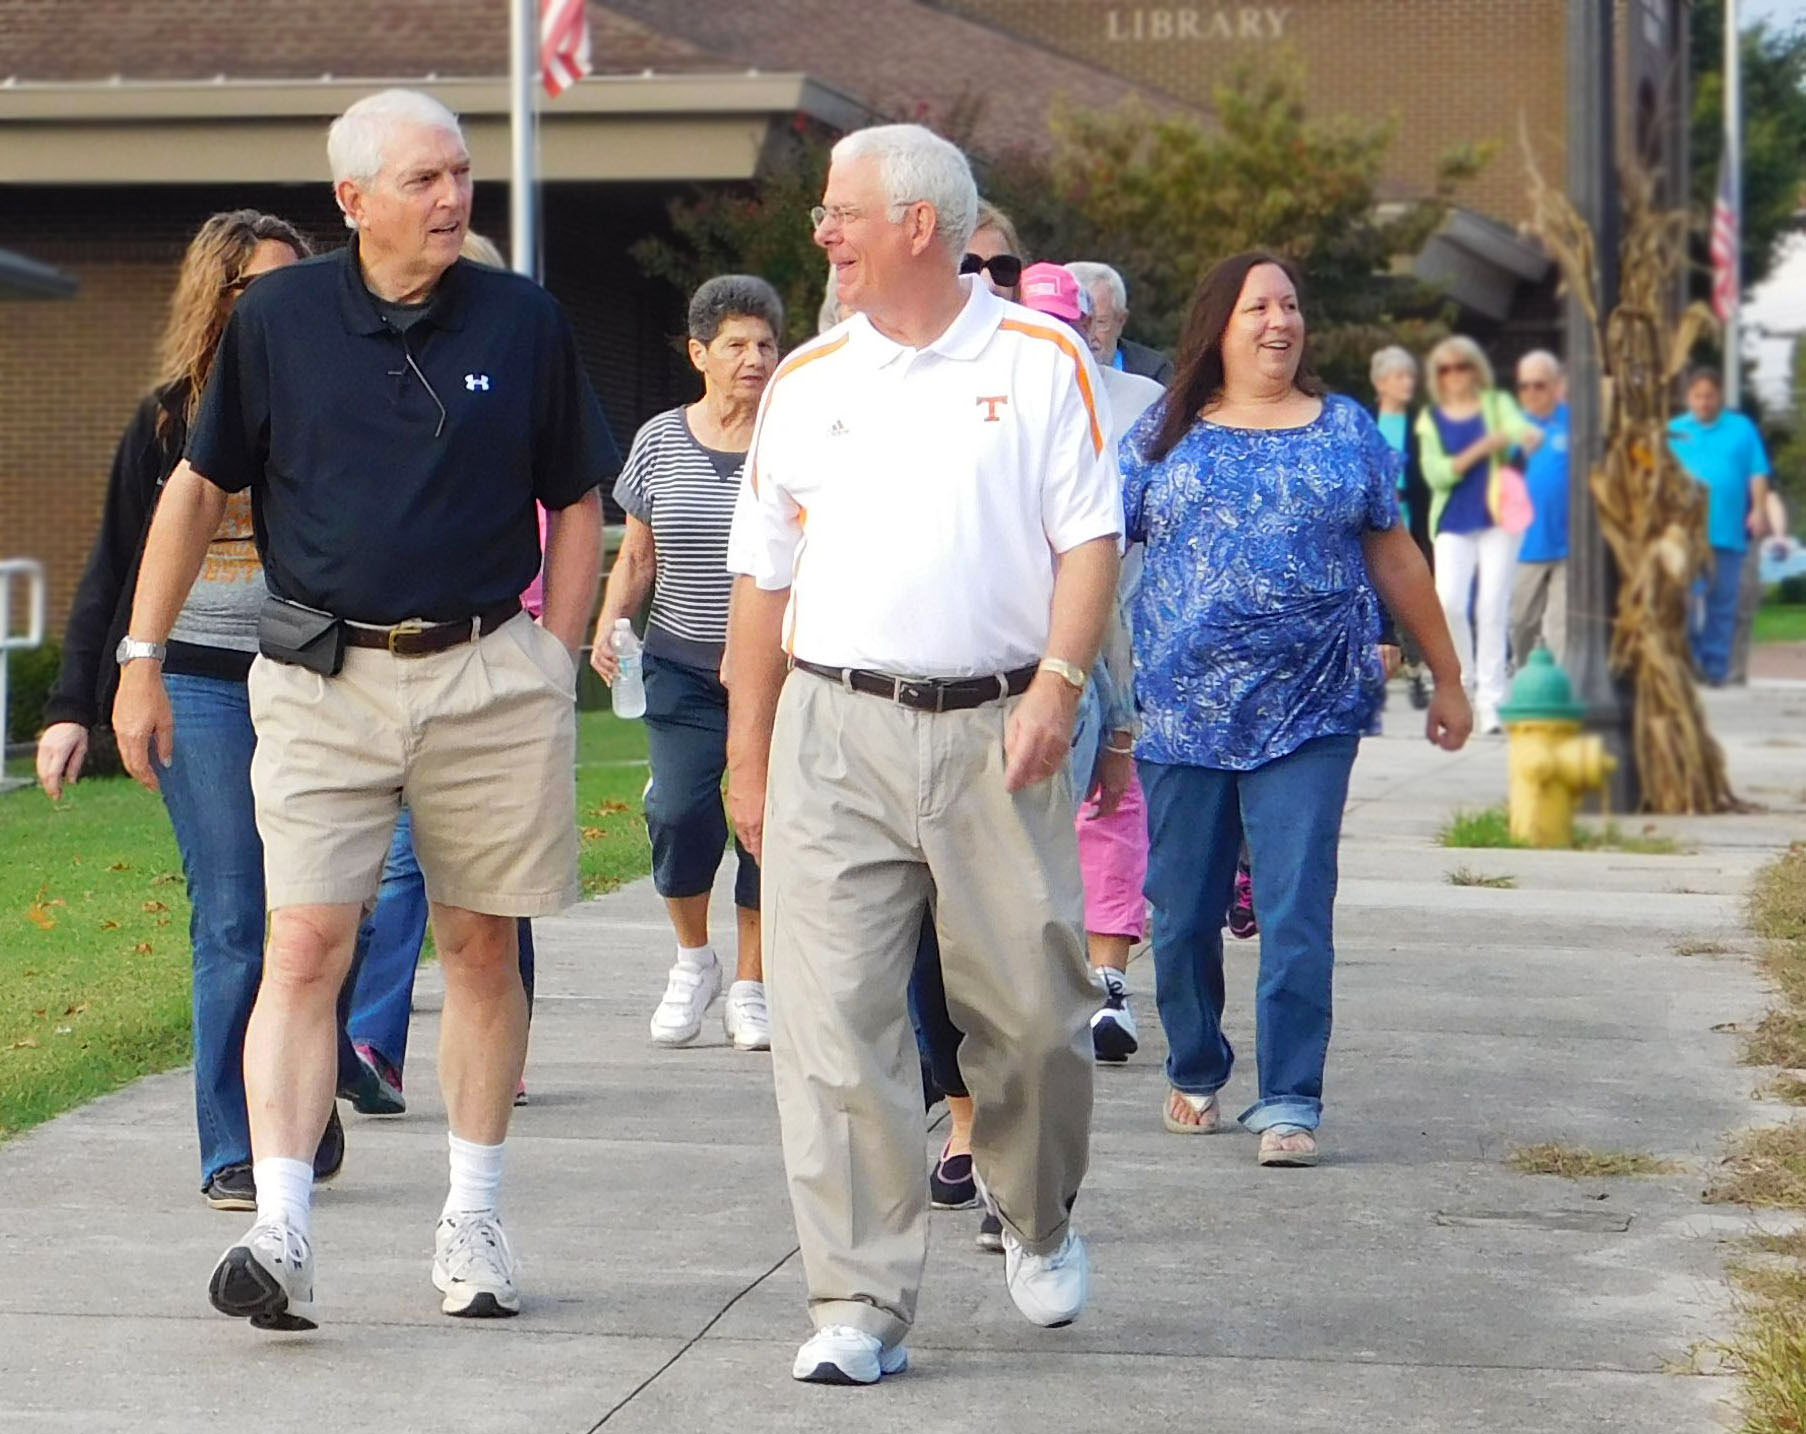 Mayors Gary Chesney and Bill Brittain lead the Mayors' Mile walk for brain health.